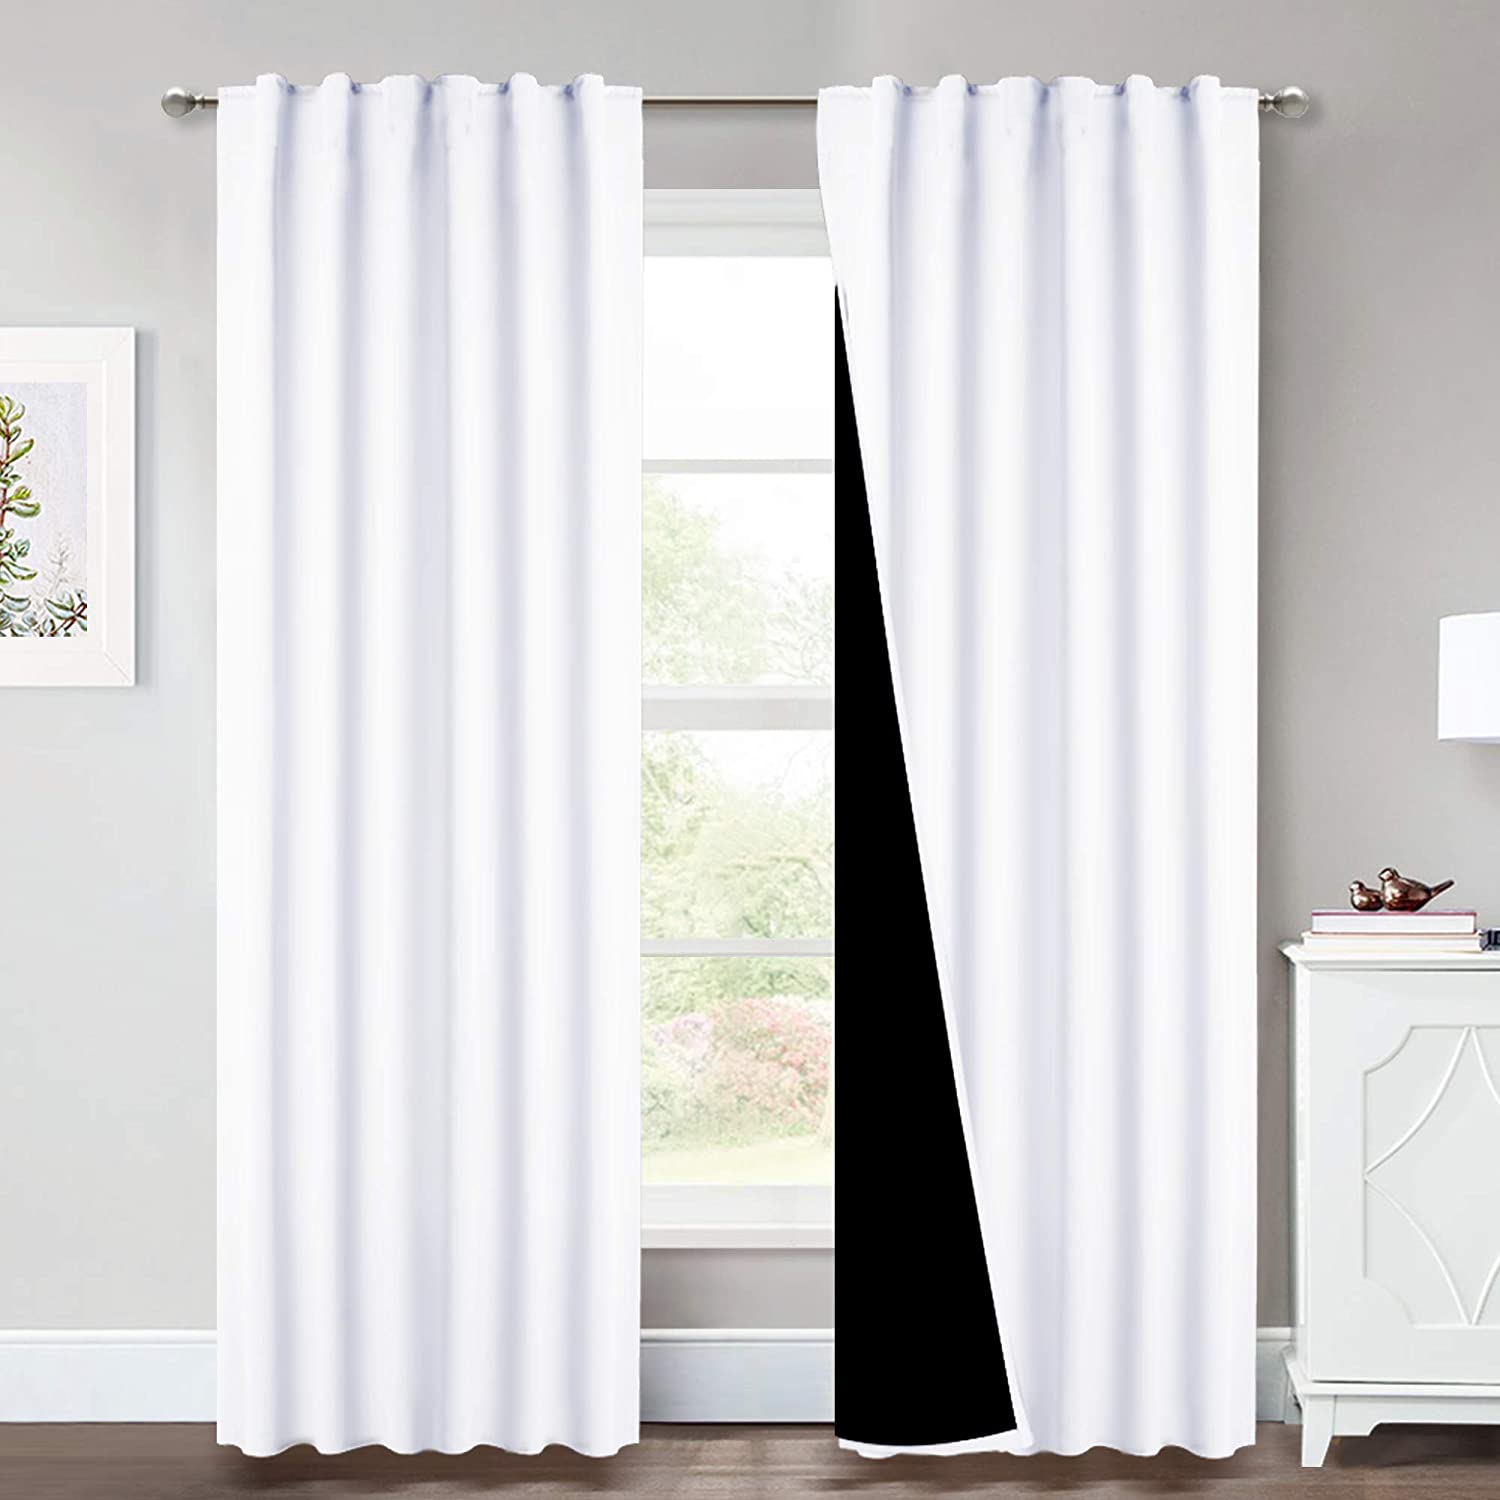 Ranking TOP6 100% quality warranty! NICETOWN 100% Blackout Window Curtain Full and Panels Heat Ligh